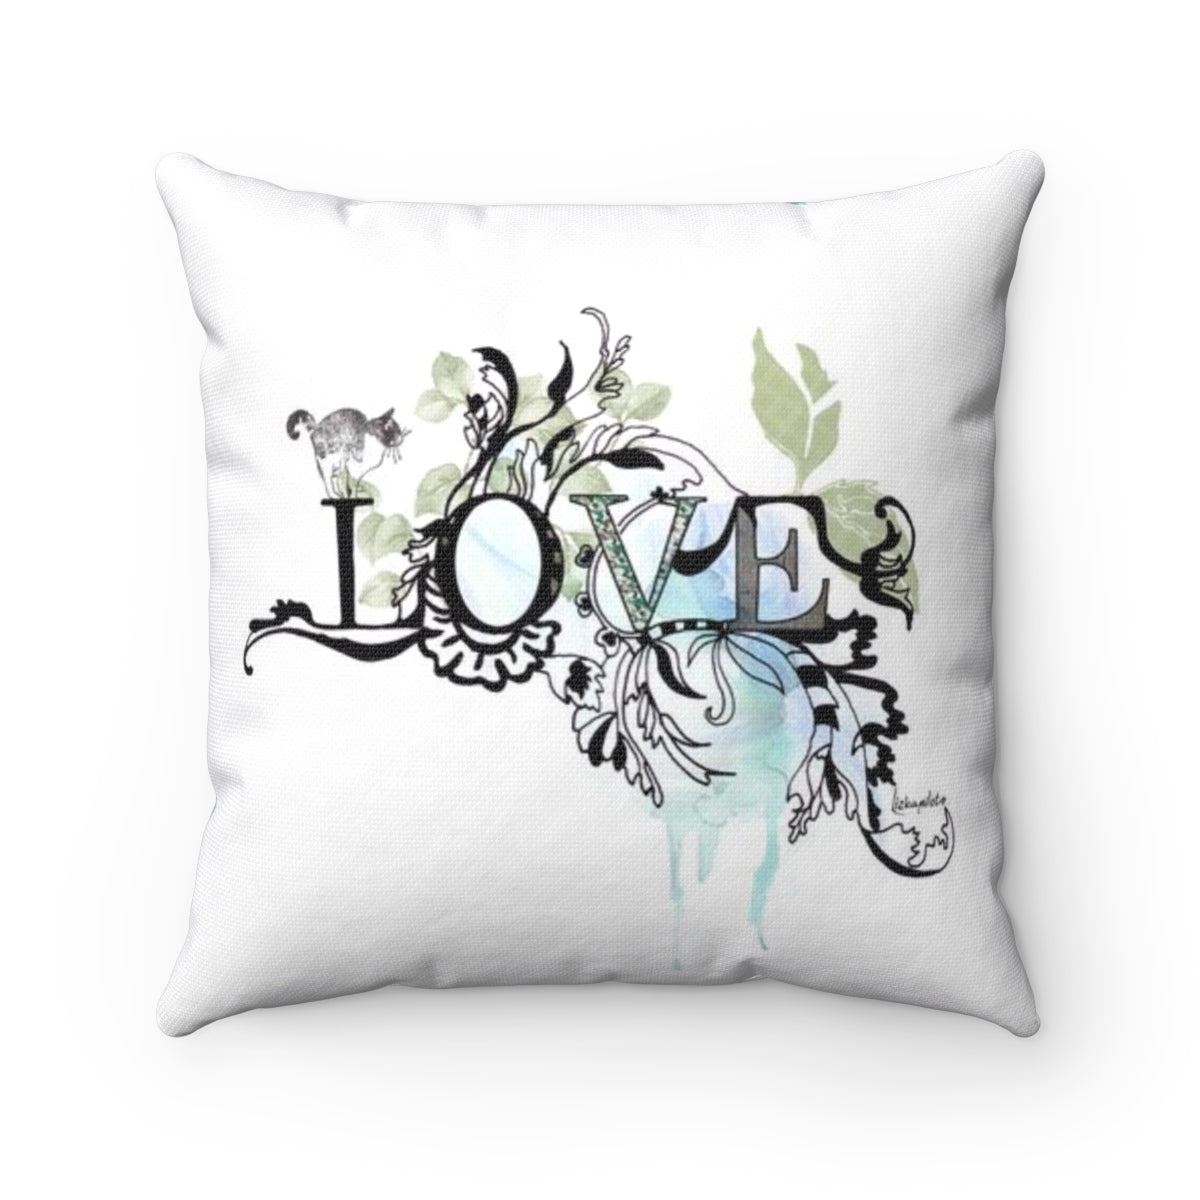 Love Throw Pillow - Liz Kapiloto Art & Design